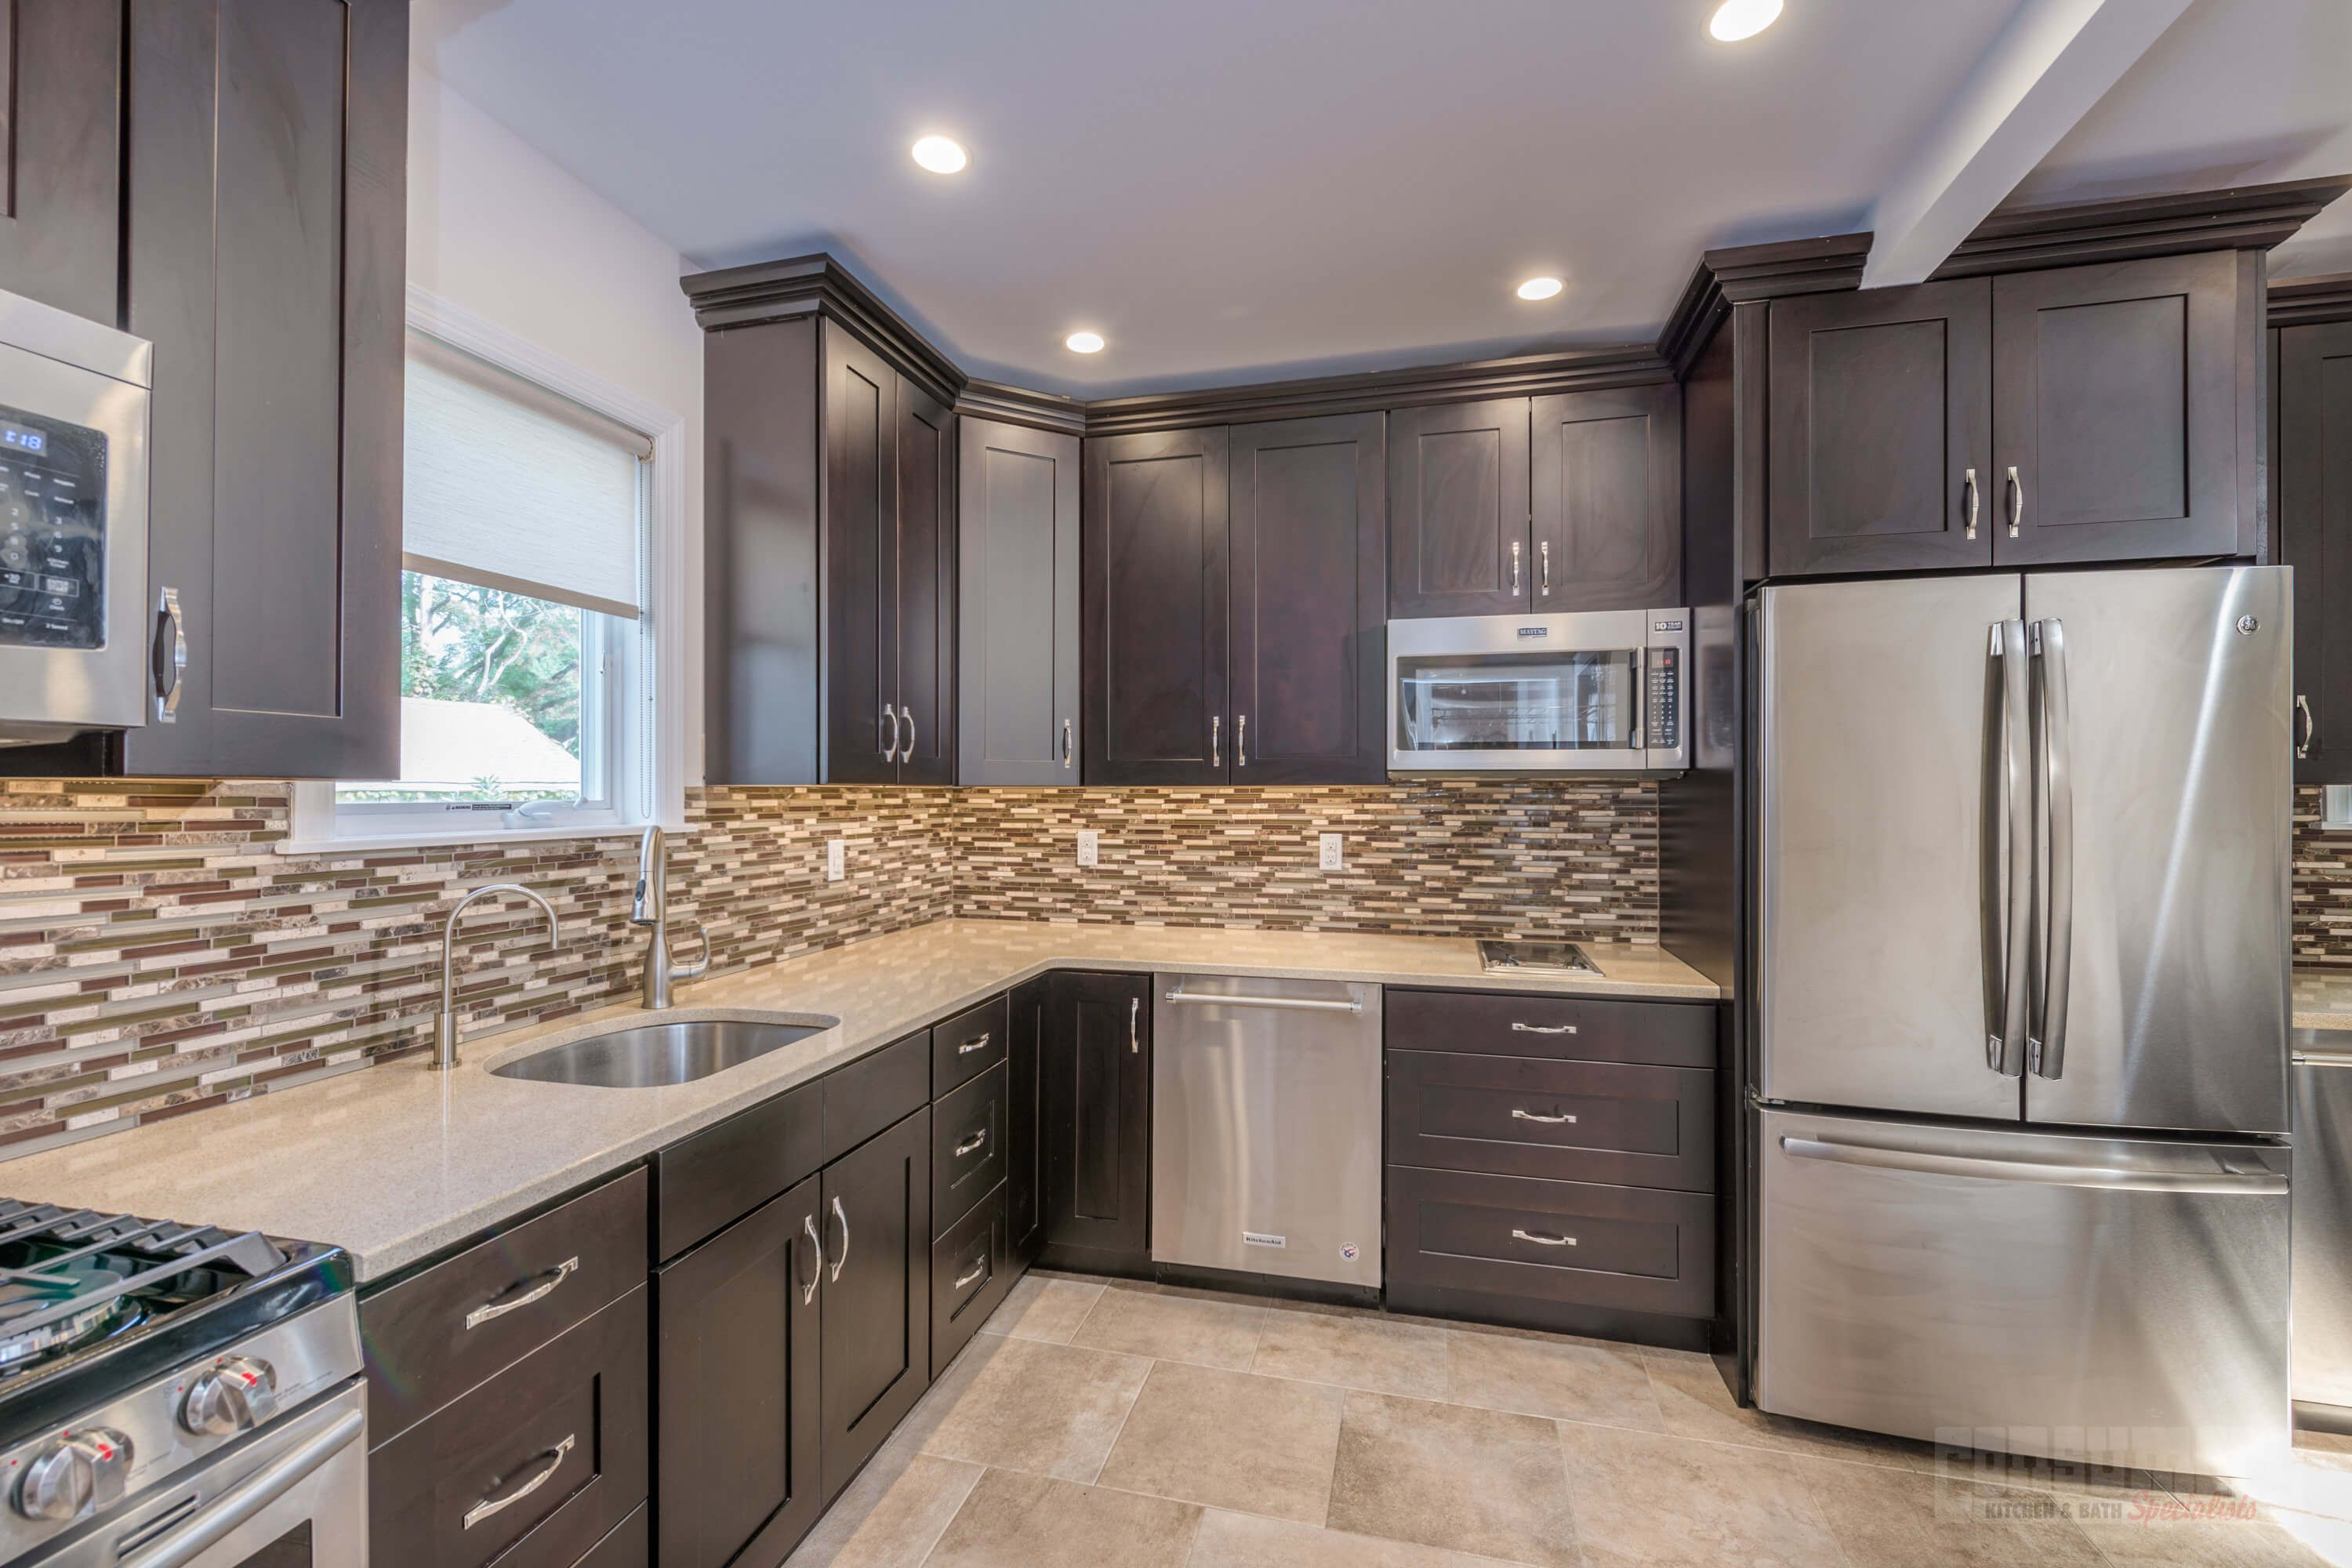 Pin By Consumers Kitchens Baths On West Hempstead Warmth Kitchen Design Kitchen And Bath Kitchen